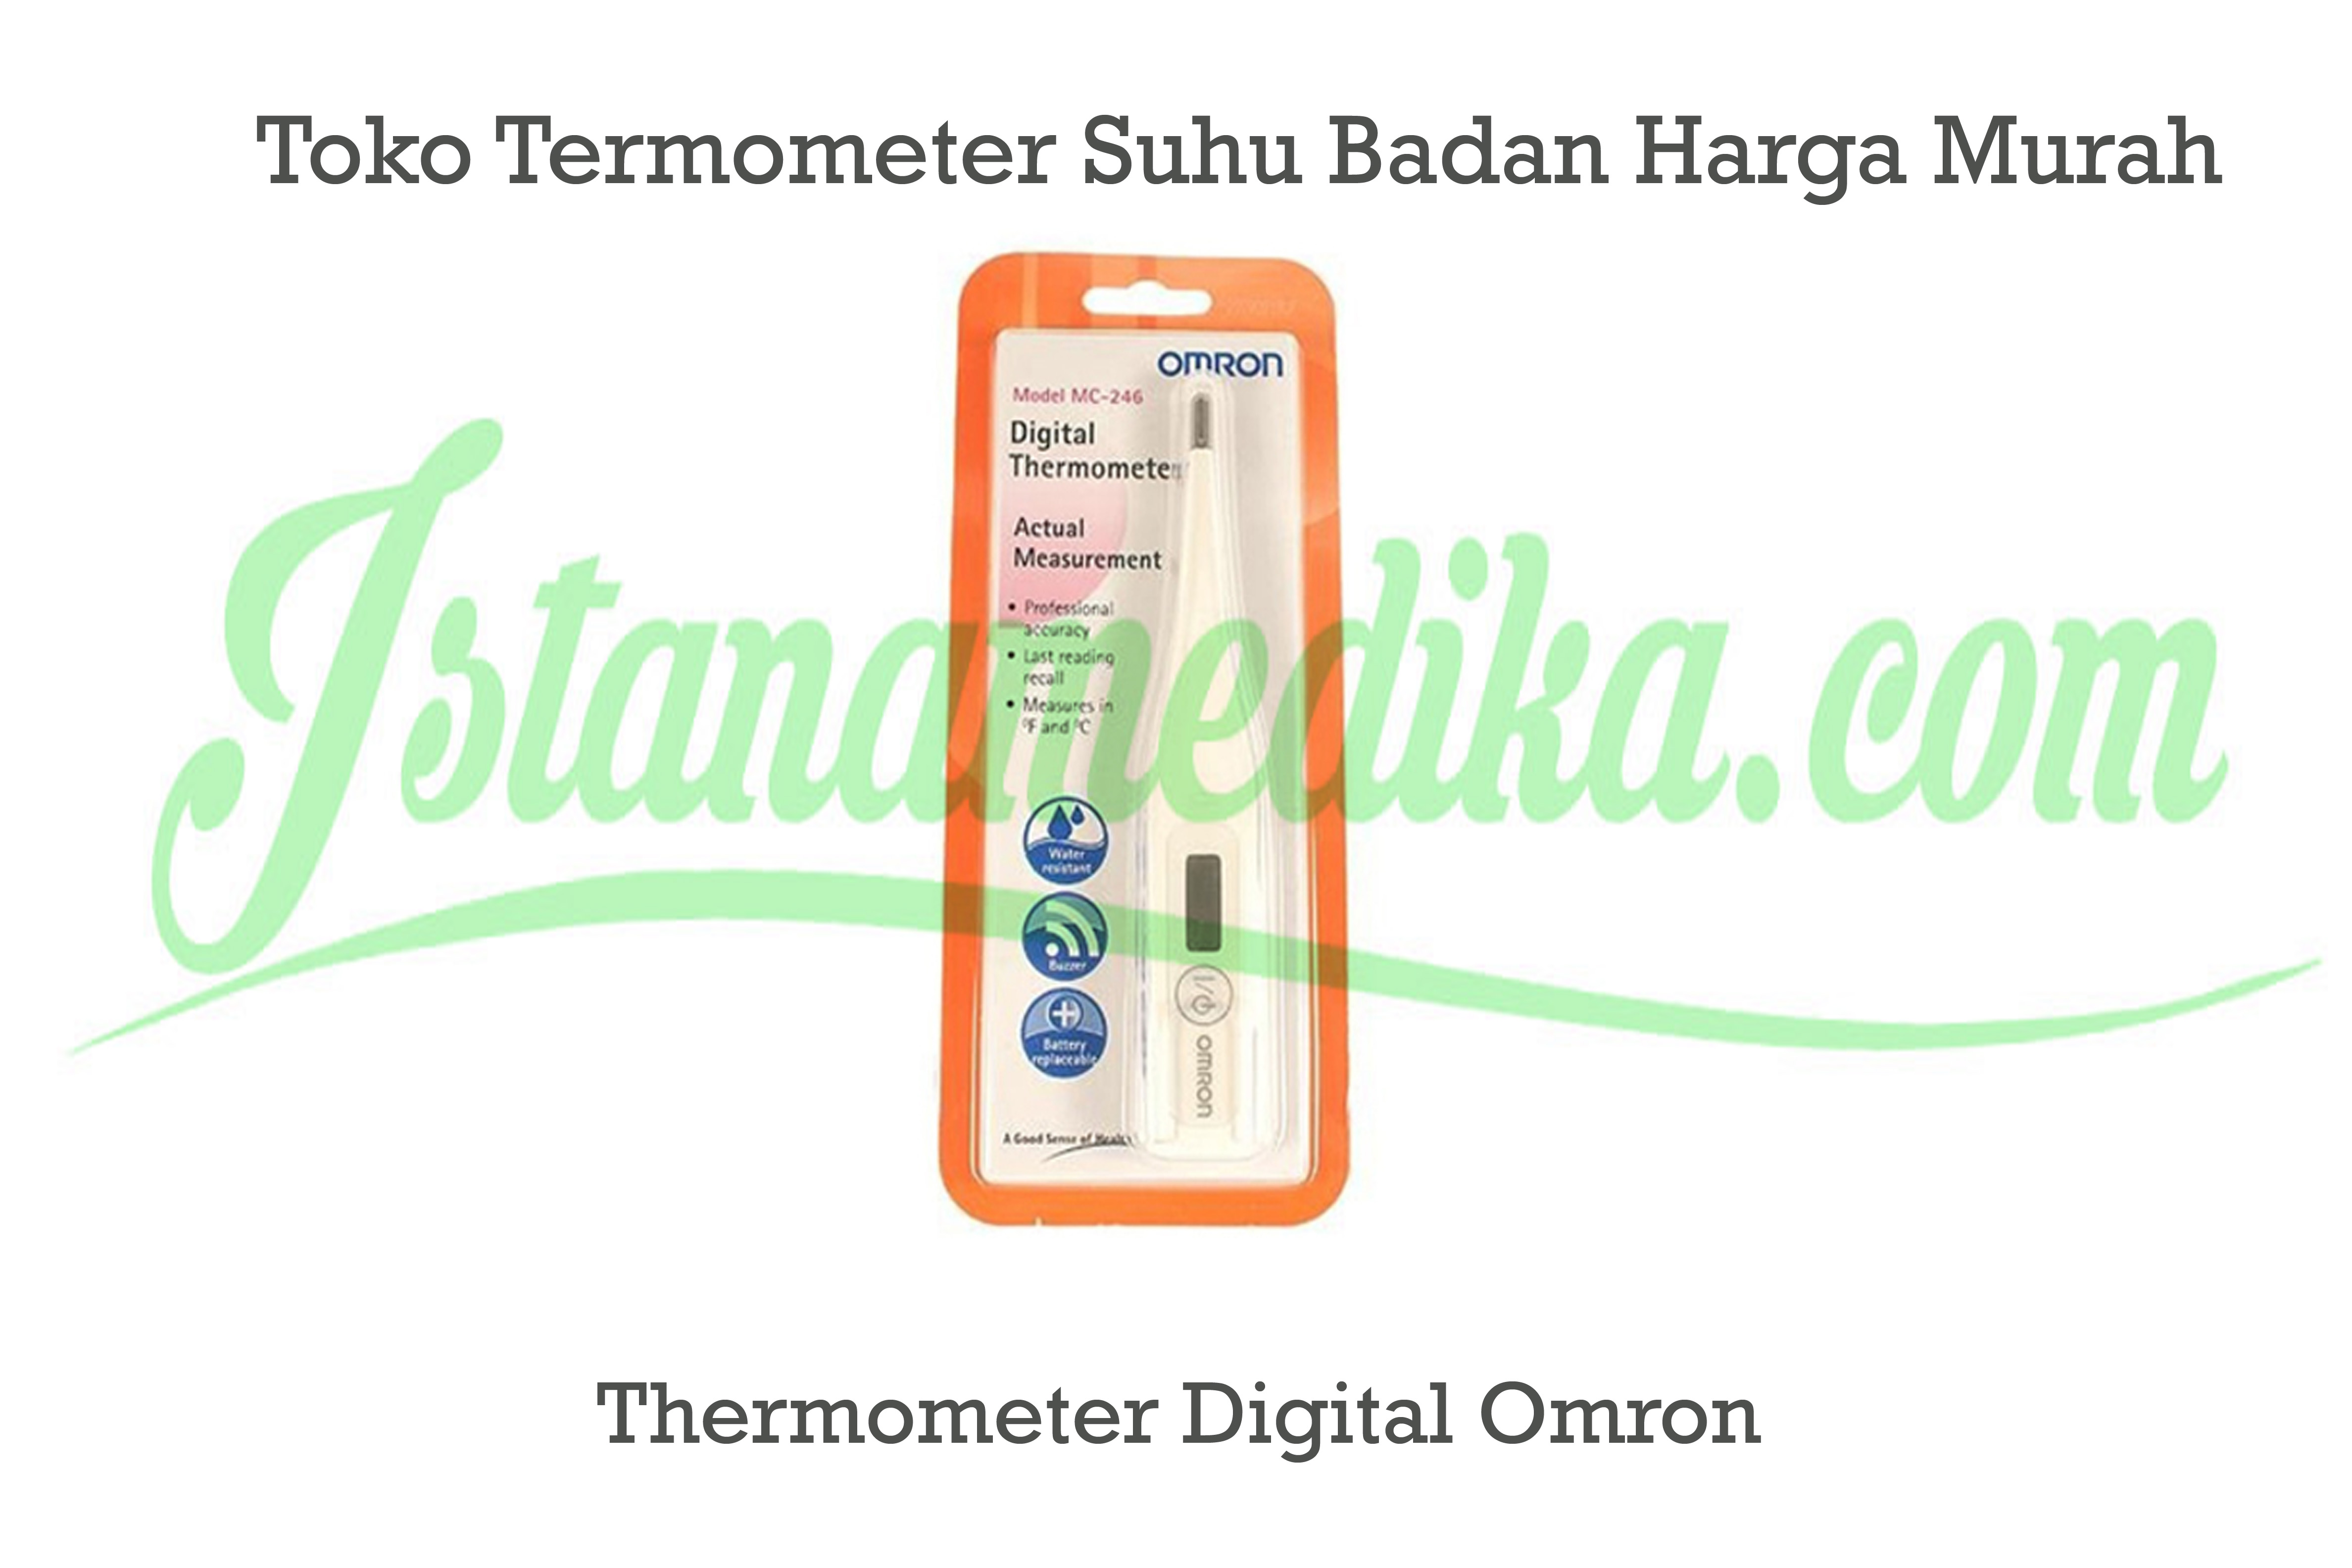 daftar harga termometer digital, harga jual thermometer digital, jual, thermometer digital, thermometer digital murah, thermometer digital ruangan, harga thermometer digital outdoor, room thermometer digital, daftar harga termometer digital, harga termometer digital omron, termometer digital murah, harga termometer digital ruangan, harga termometer digital telinga, harga termometer ruangan, harga termometer digital di apotik, harga termometer digital untuk bayi, termometer, harga thermometer, thermometer digital untuk mengontrol suhu ruangan, jual thermometer digital, thermometer digital harga, thermostat penetas telur, rumus thermometer, function of thermometer